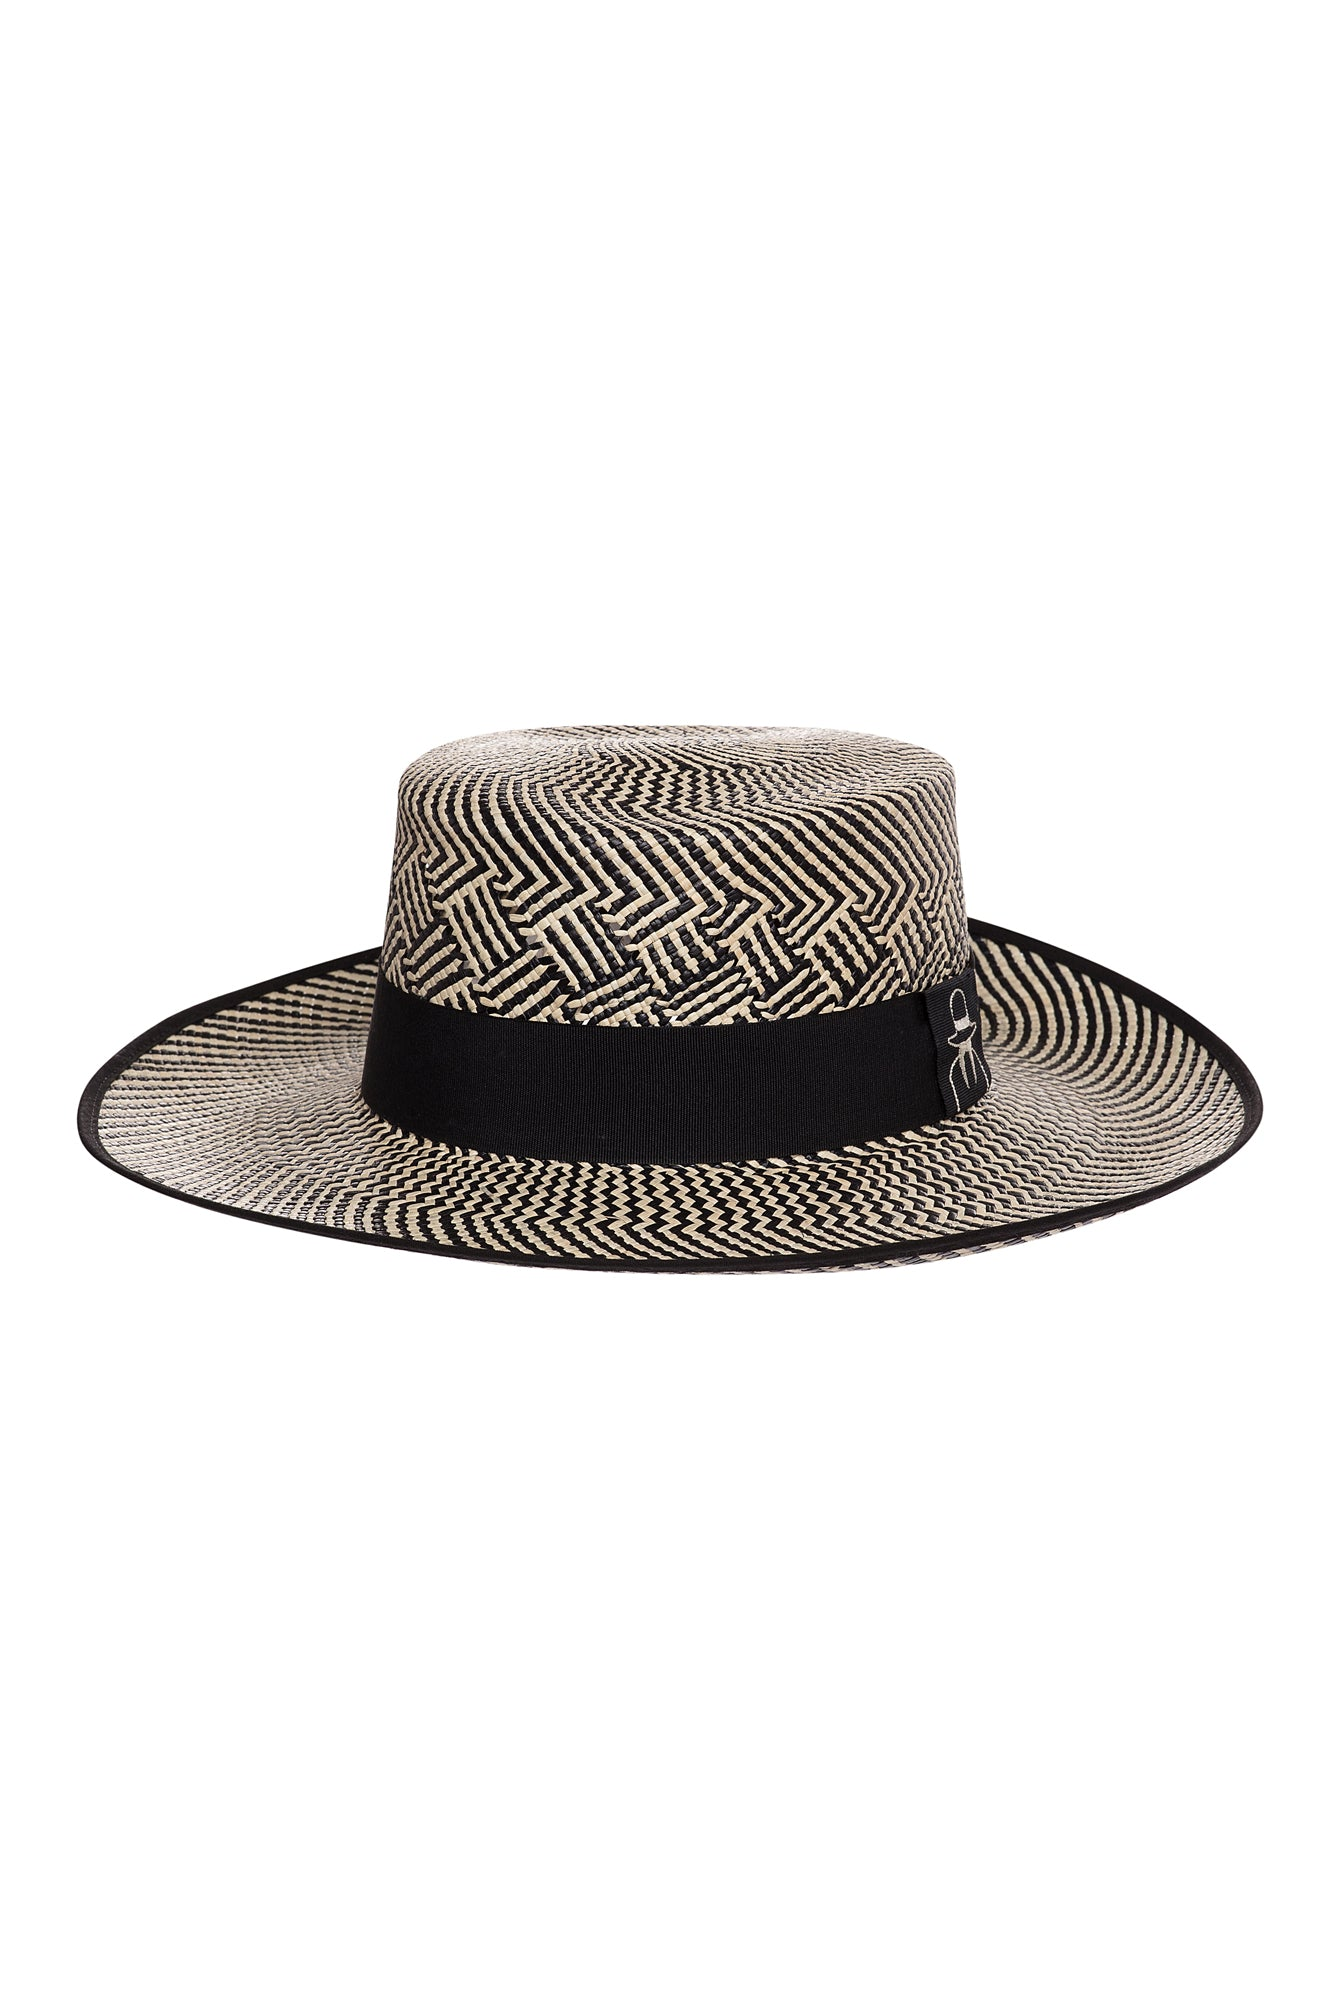 Carolina K Boat Straw Hat Black/Natural